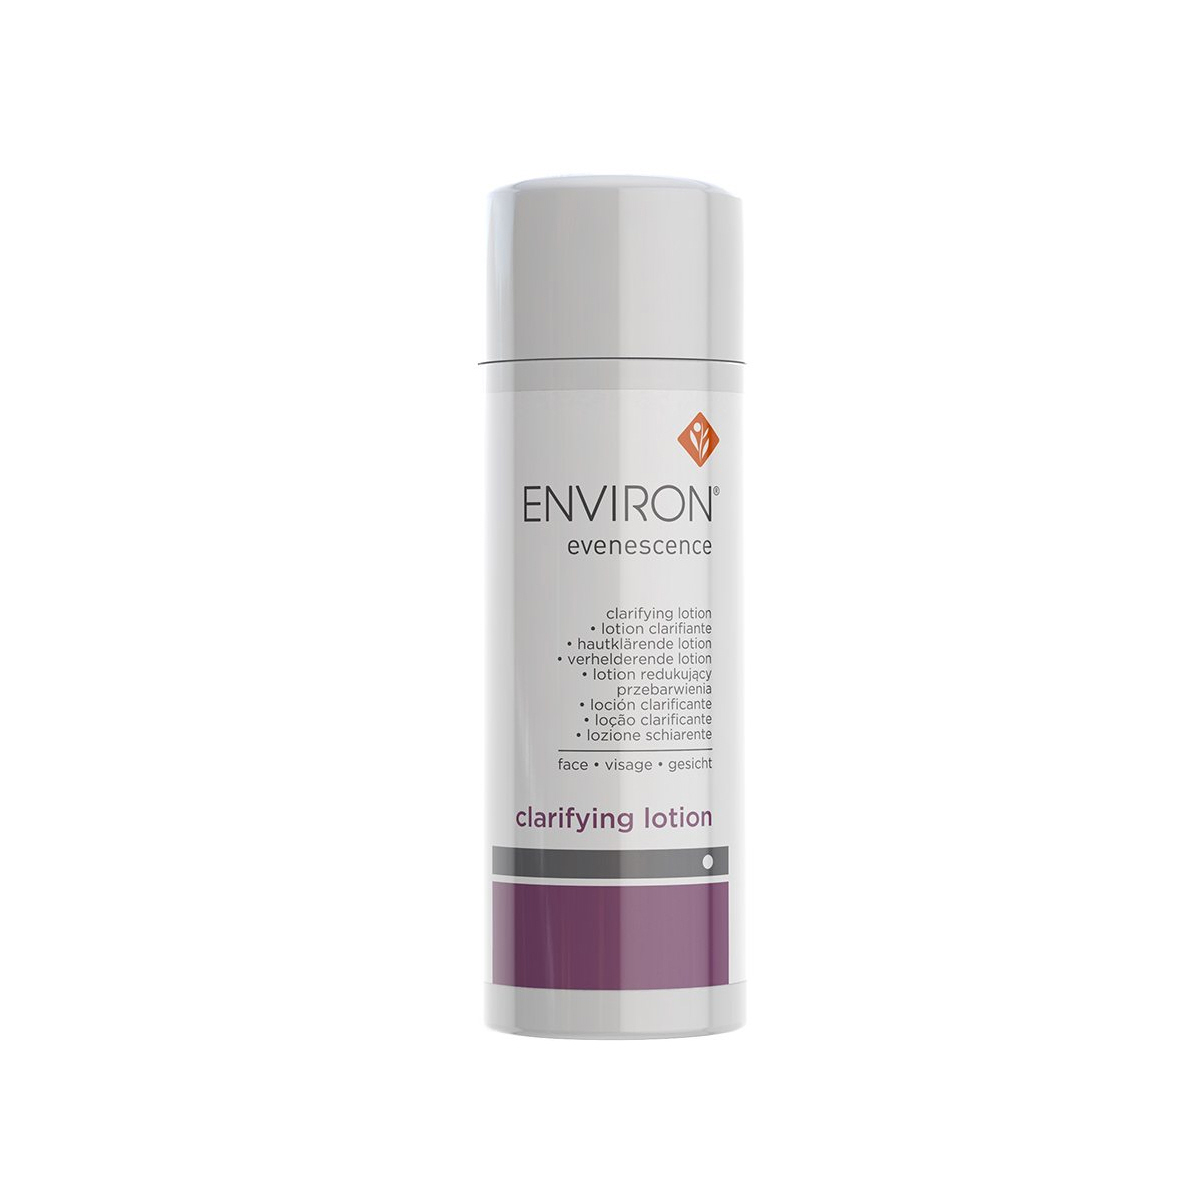 Environ Evenescence Clarifying Lotion